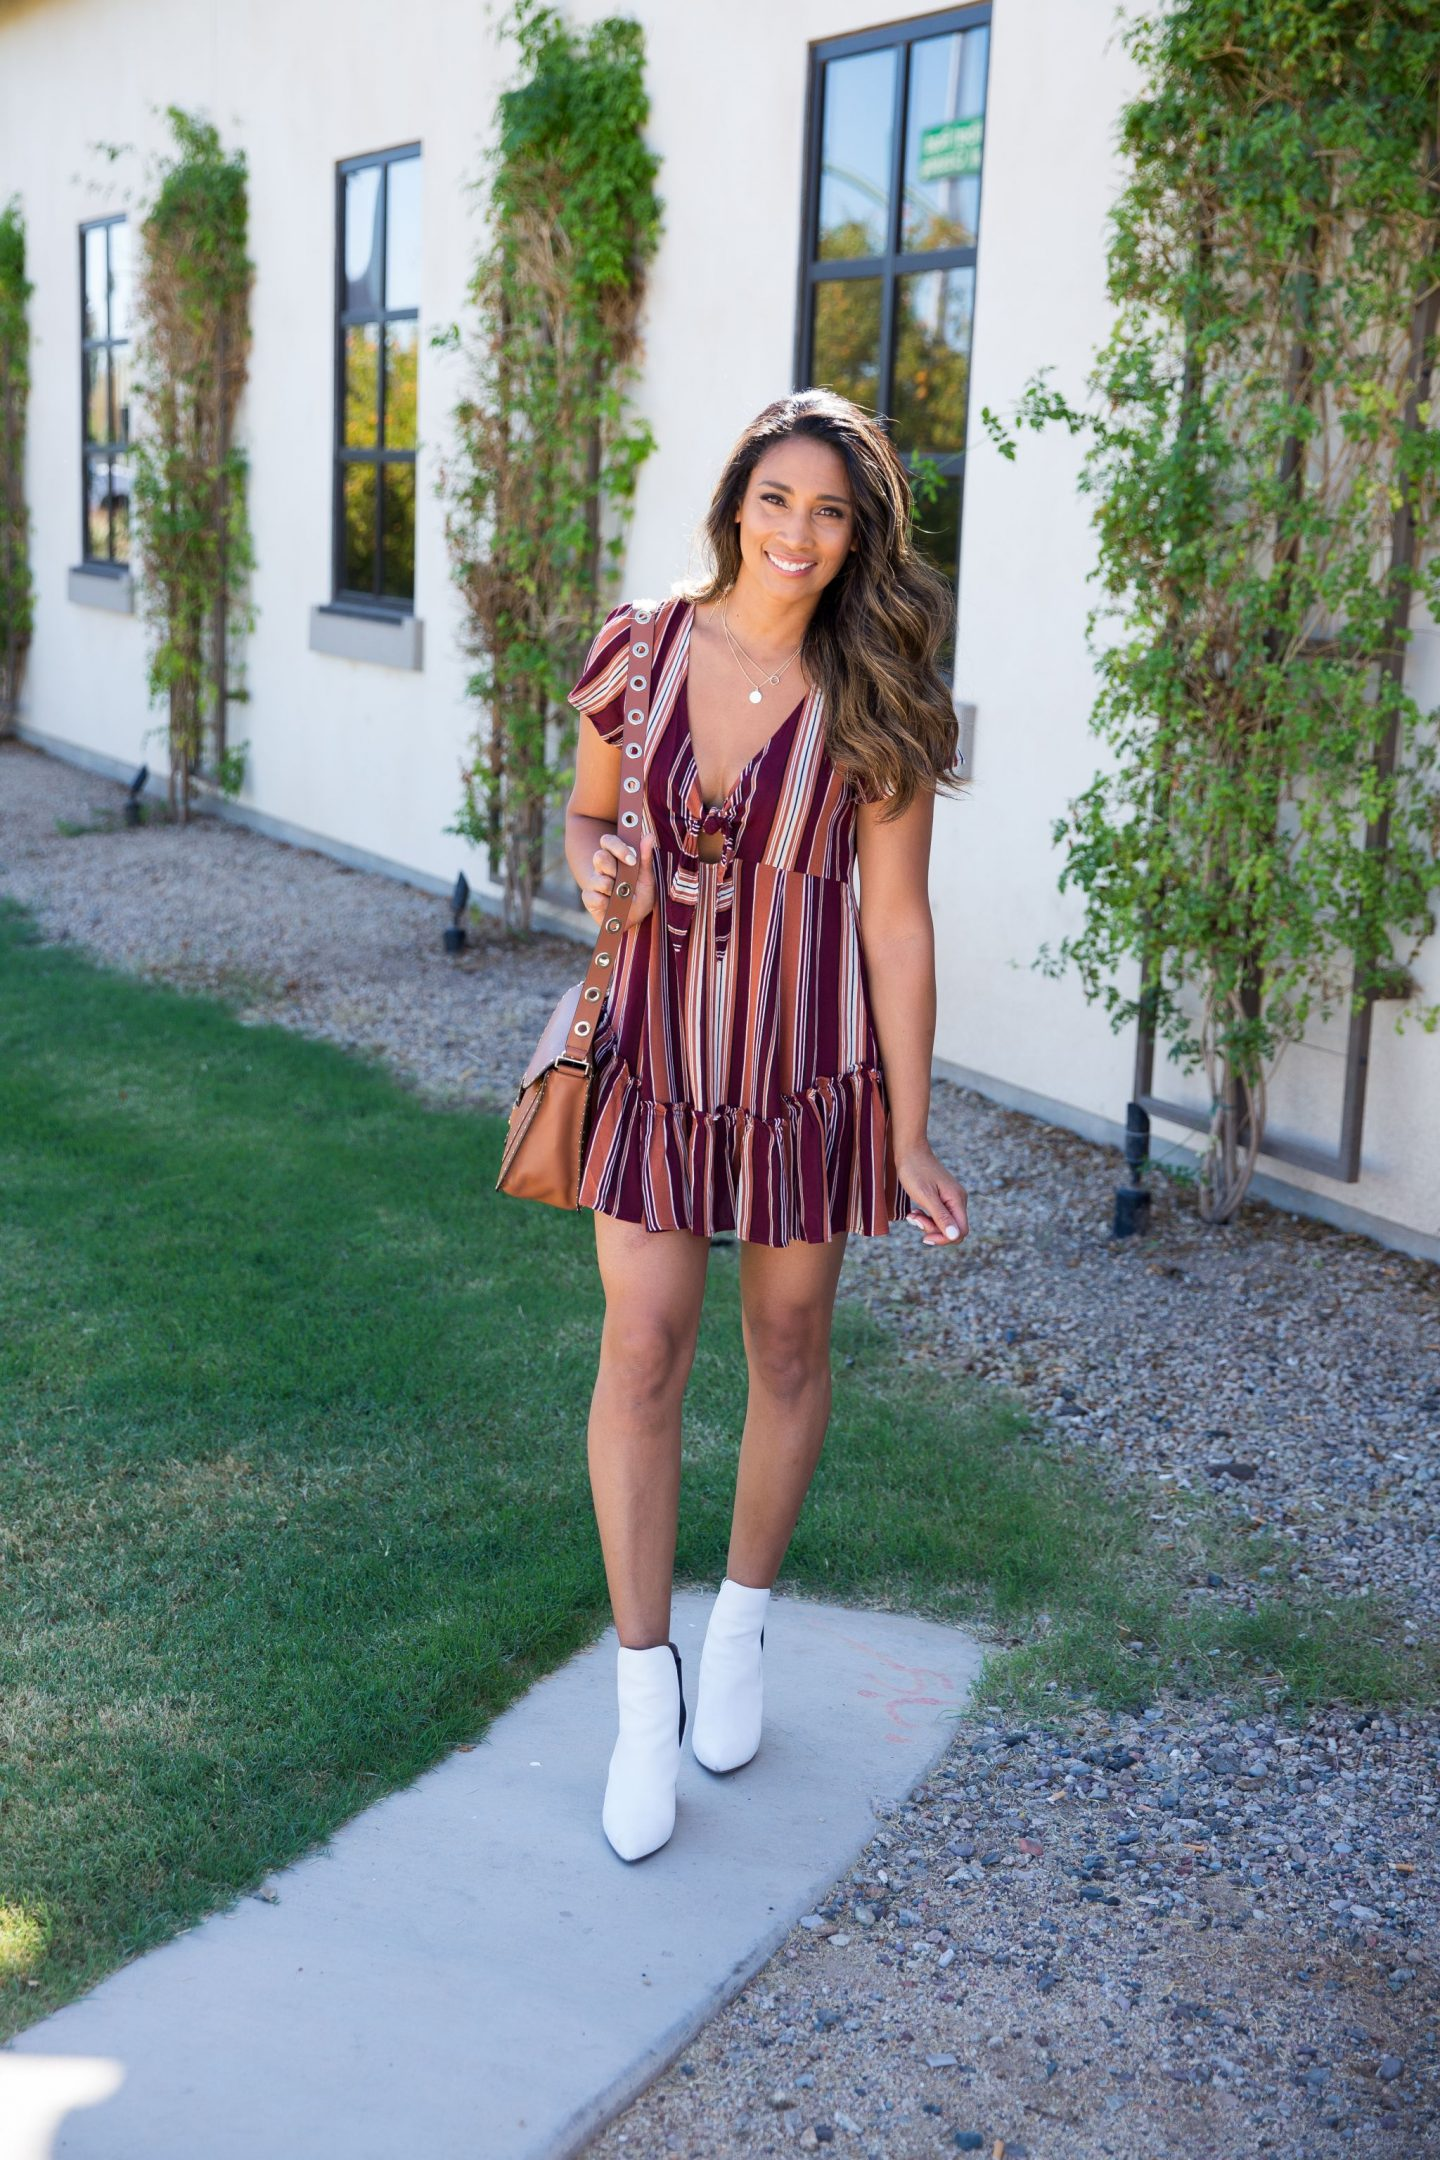 FALL FASHION, FALL BOOTS, OUTFIT INSPIRATION, WHAT TO WEAR, STYLE, BLOGGER STYLE, PHOENIX BLOGGER, SCOTTSDALE BLOGGER